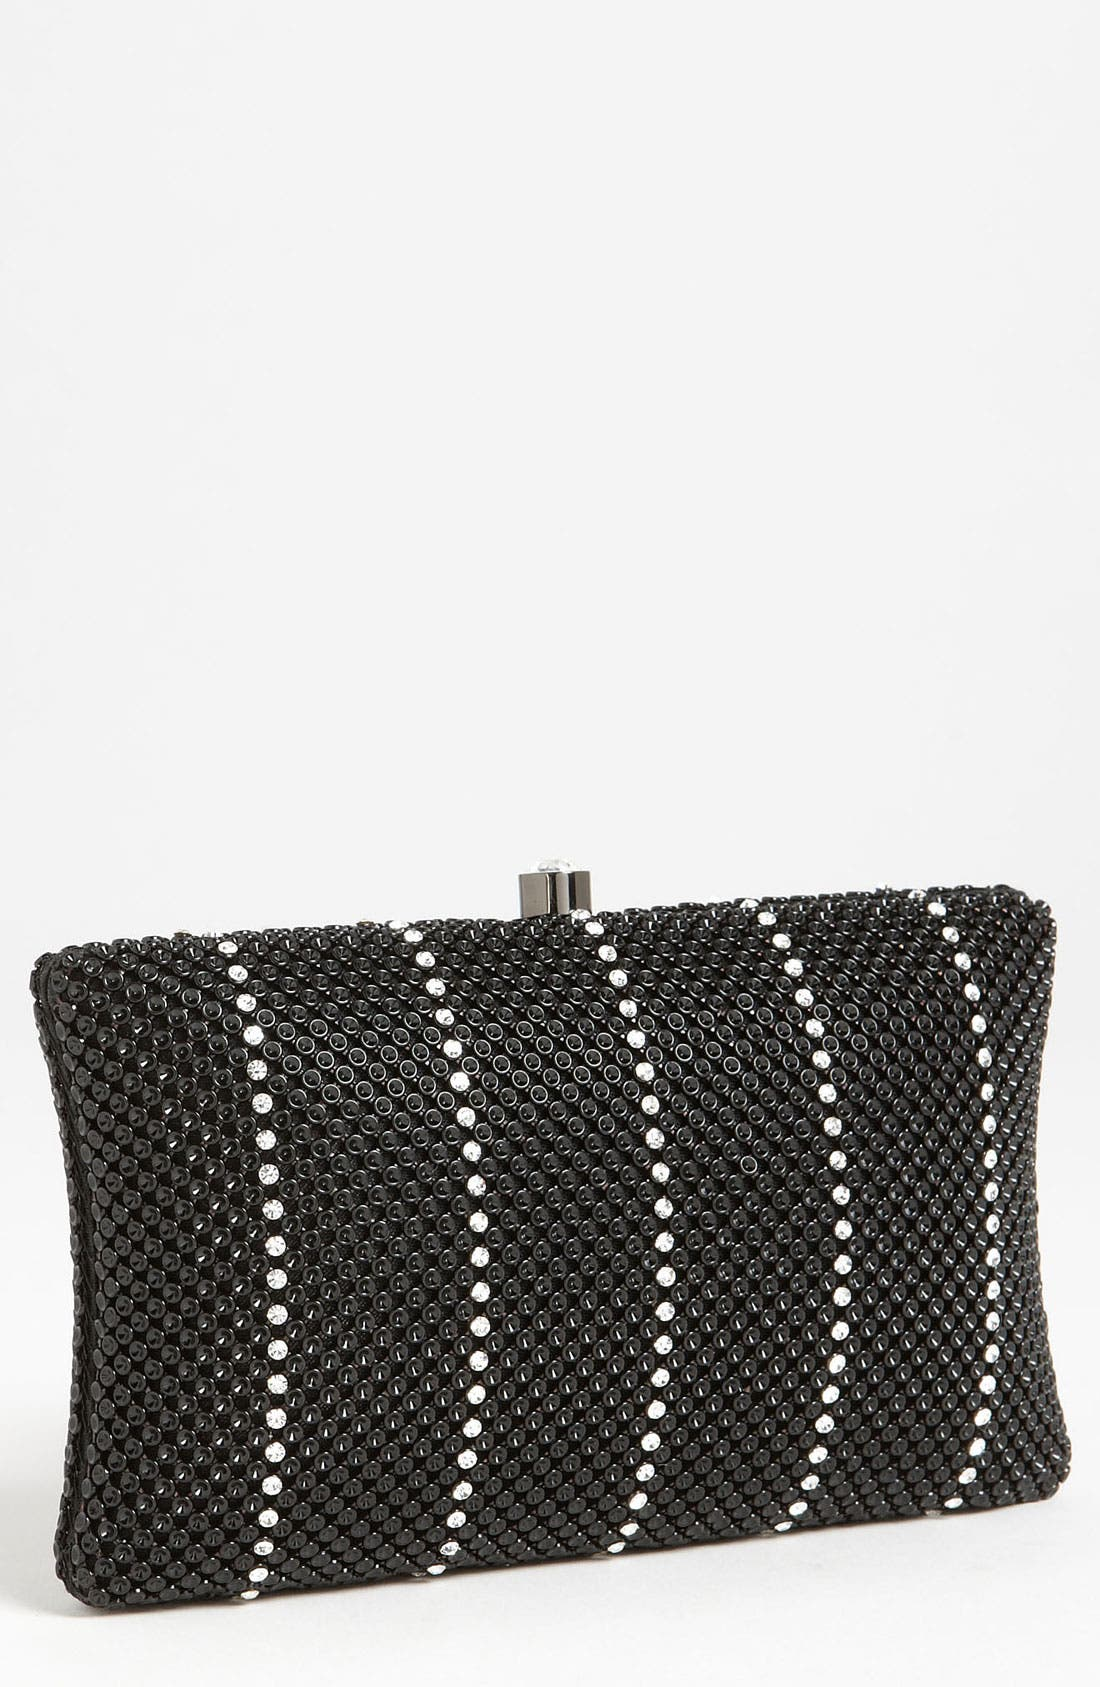 Alternate Image 1 Selected - Whiting & Davis 'Crystal Stripe' Clutch